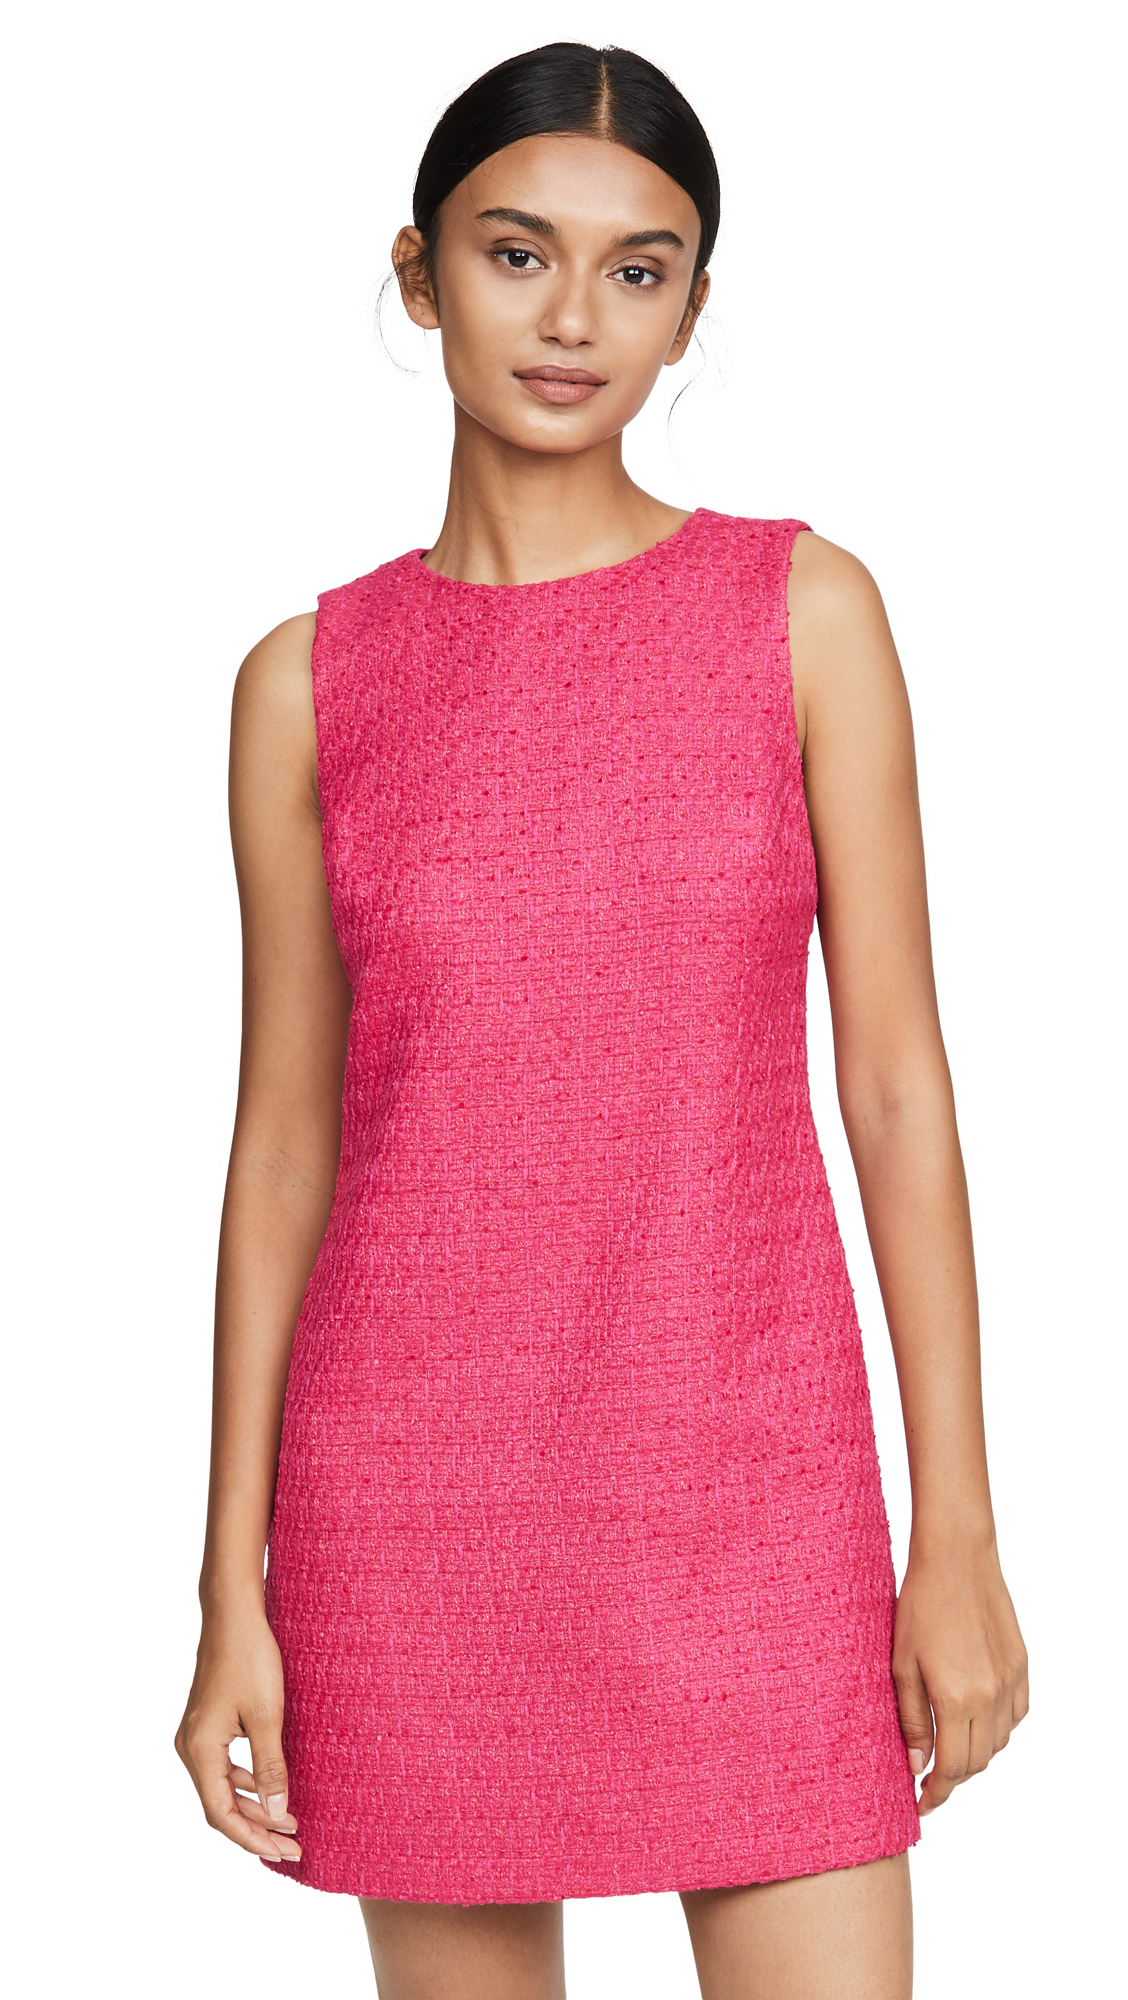 alice + olivia Clyde A-Line Shift Dress - Bright Pink